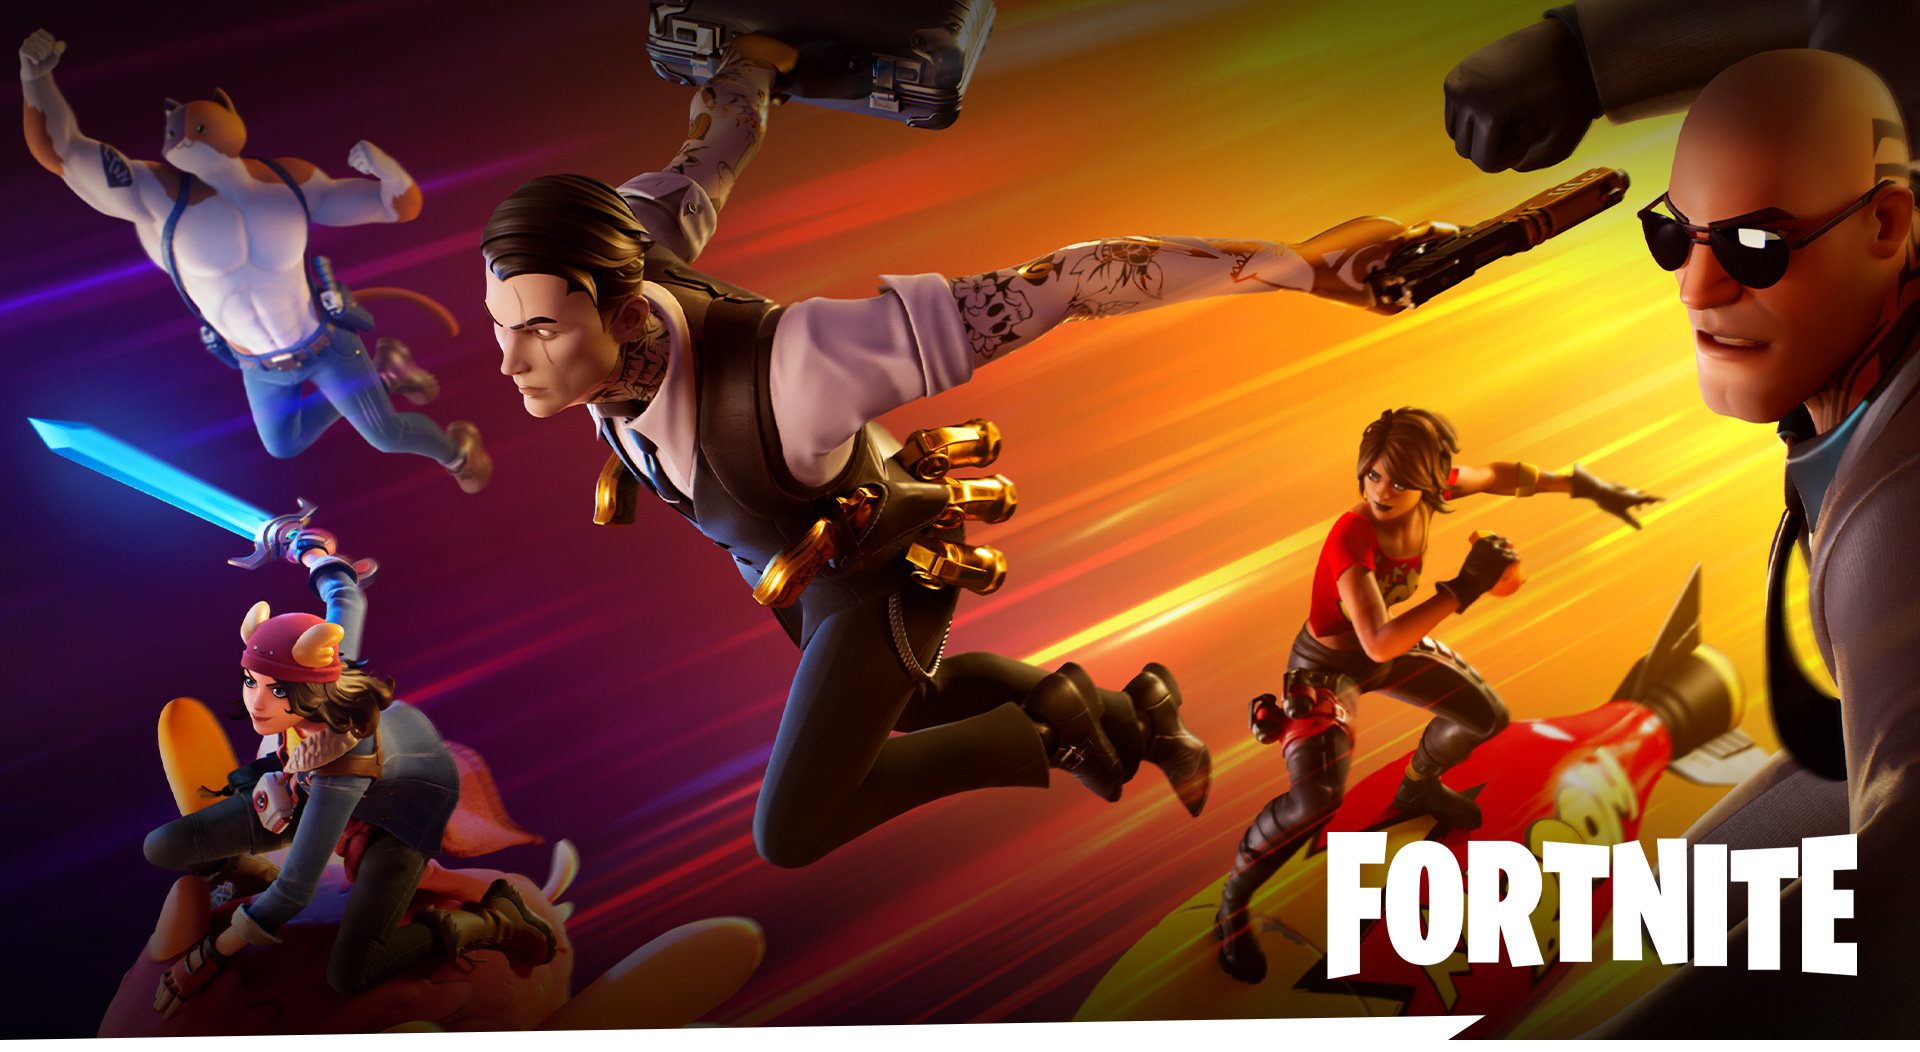 Fortnite, a cast of characters fly through the air ready for battle.